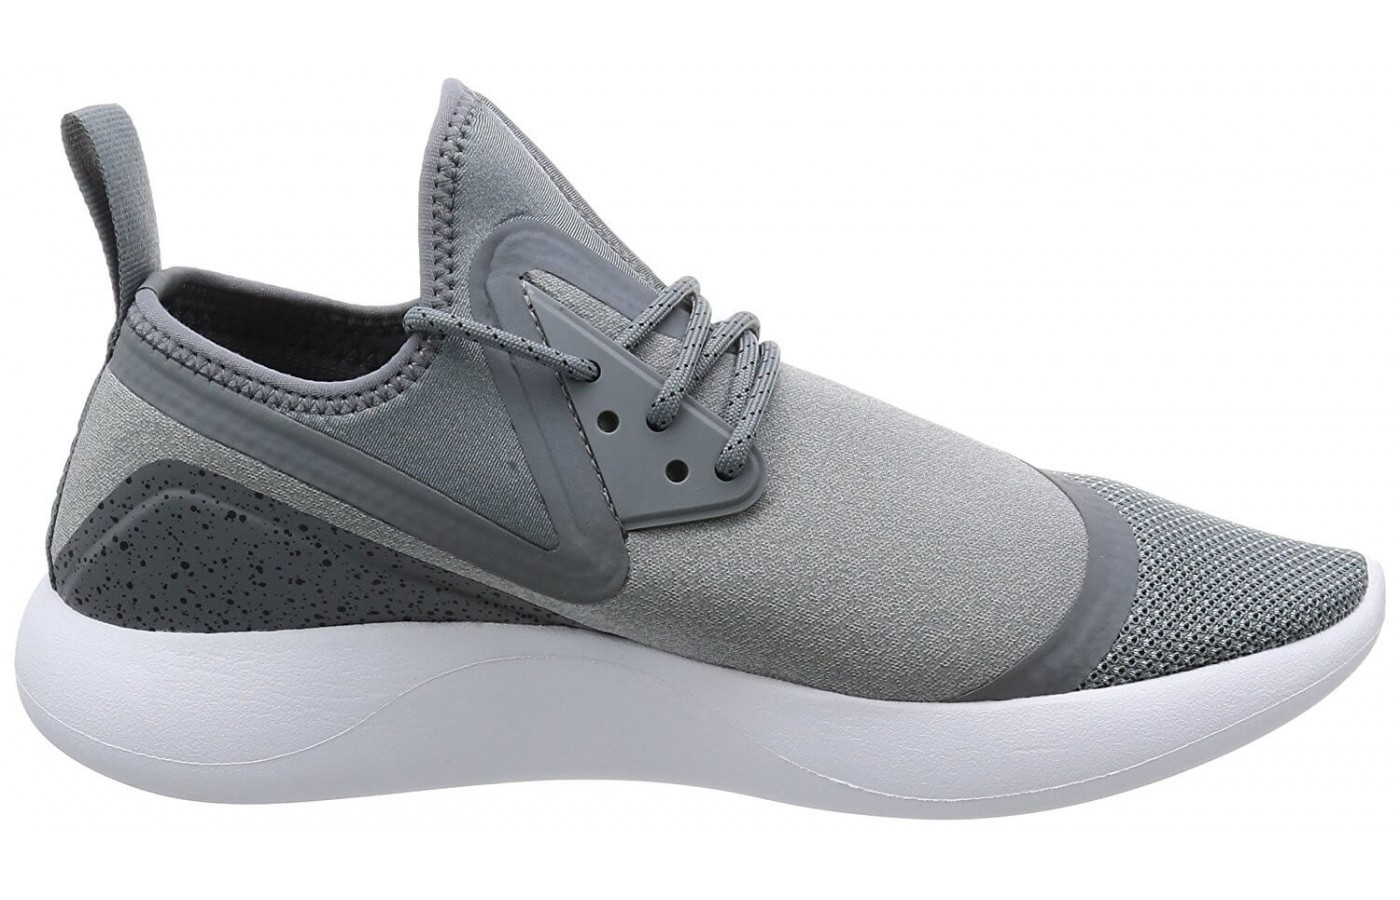 cf9f9cdd46 The midsole of the Nike LunarCharge Essential is made from the traditional  EVA foam padding.